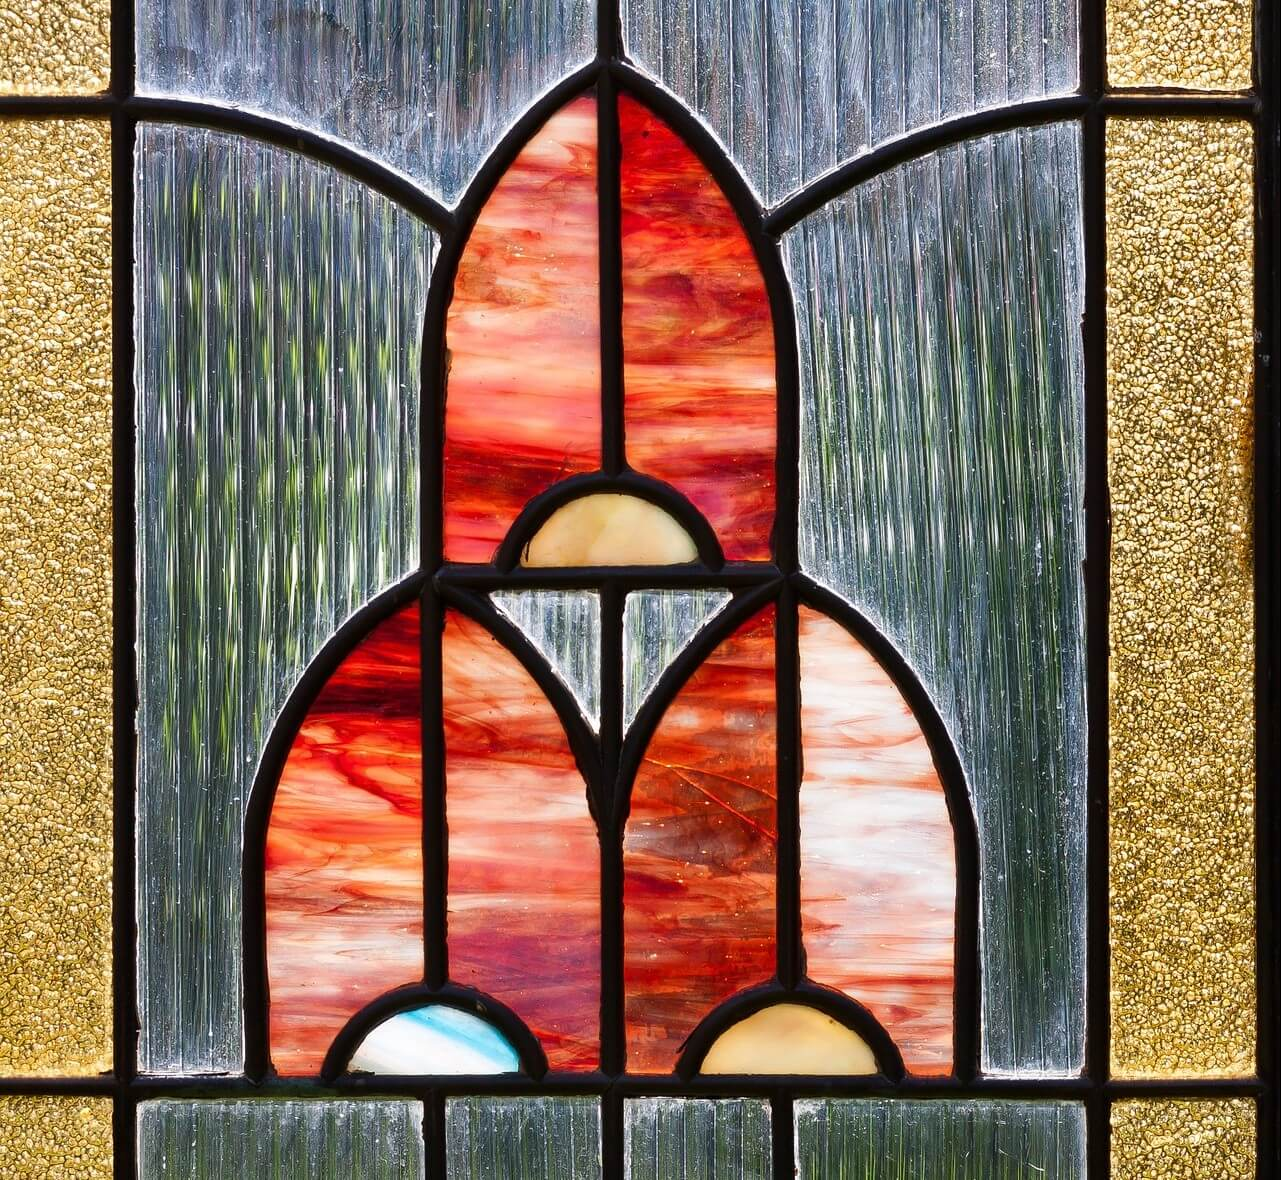 A photo of a stained glass front door window in the art nouveau style